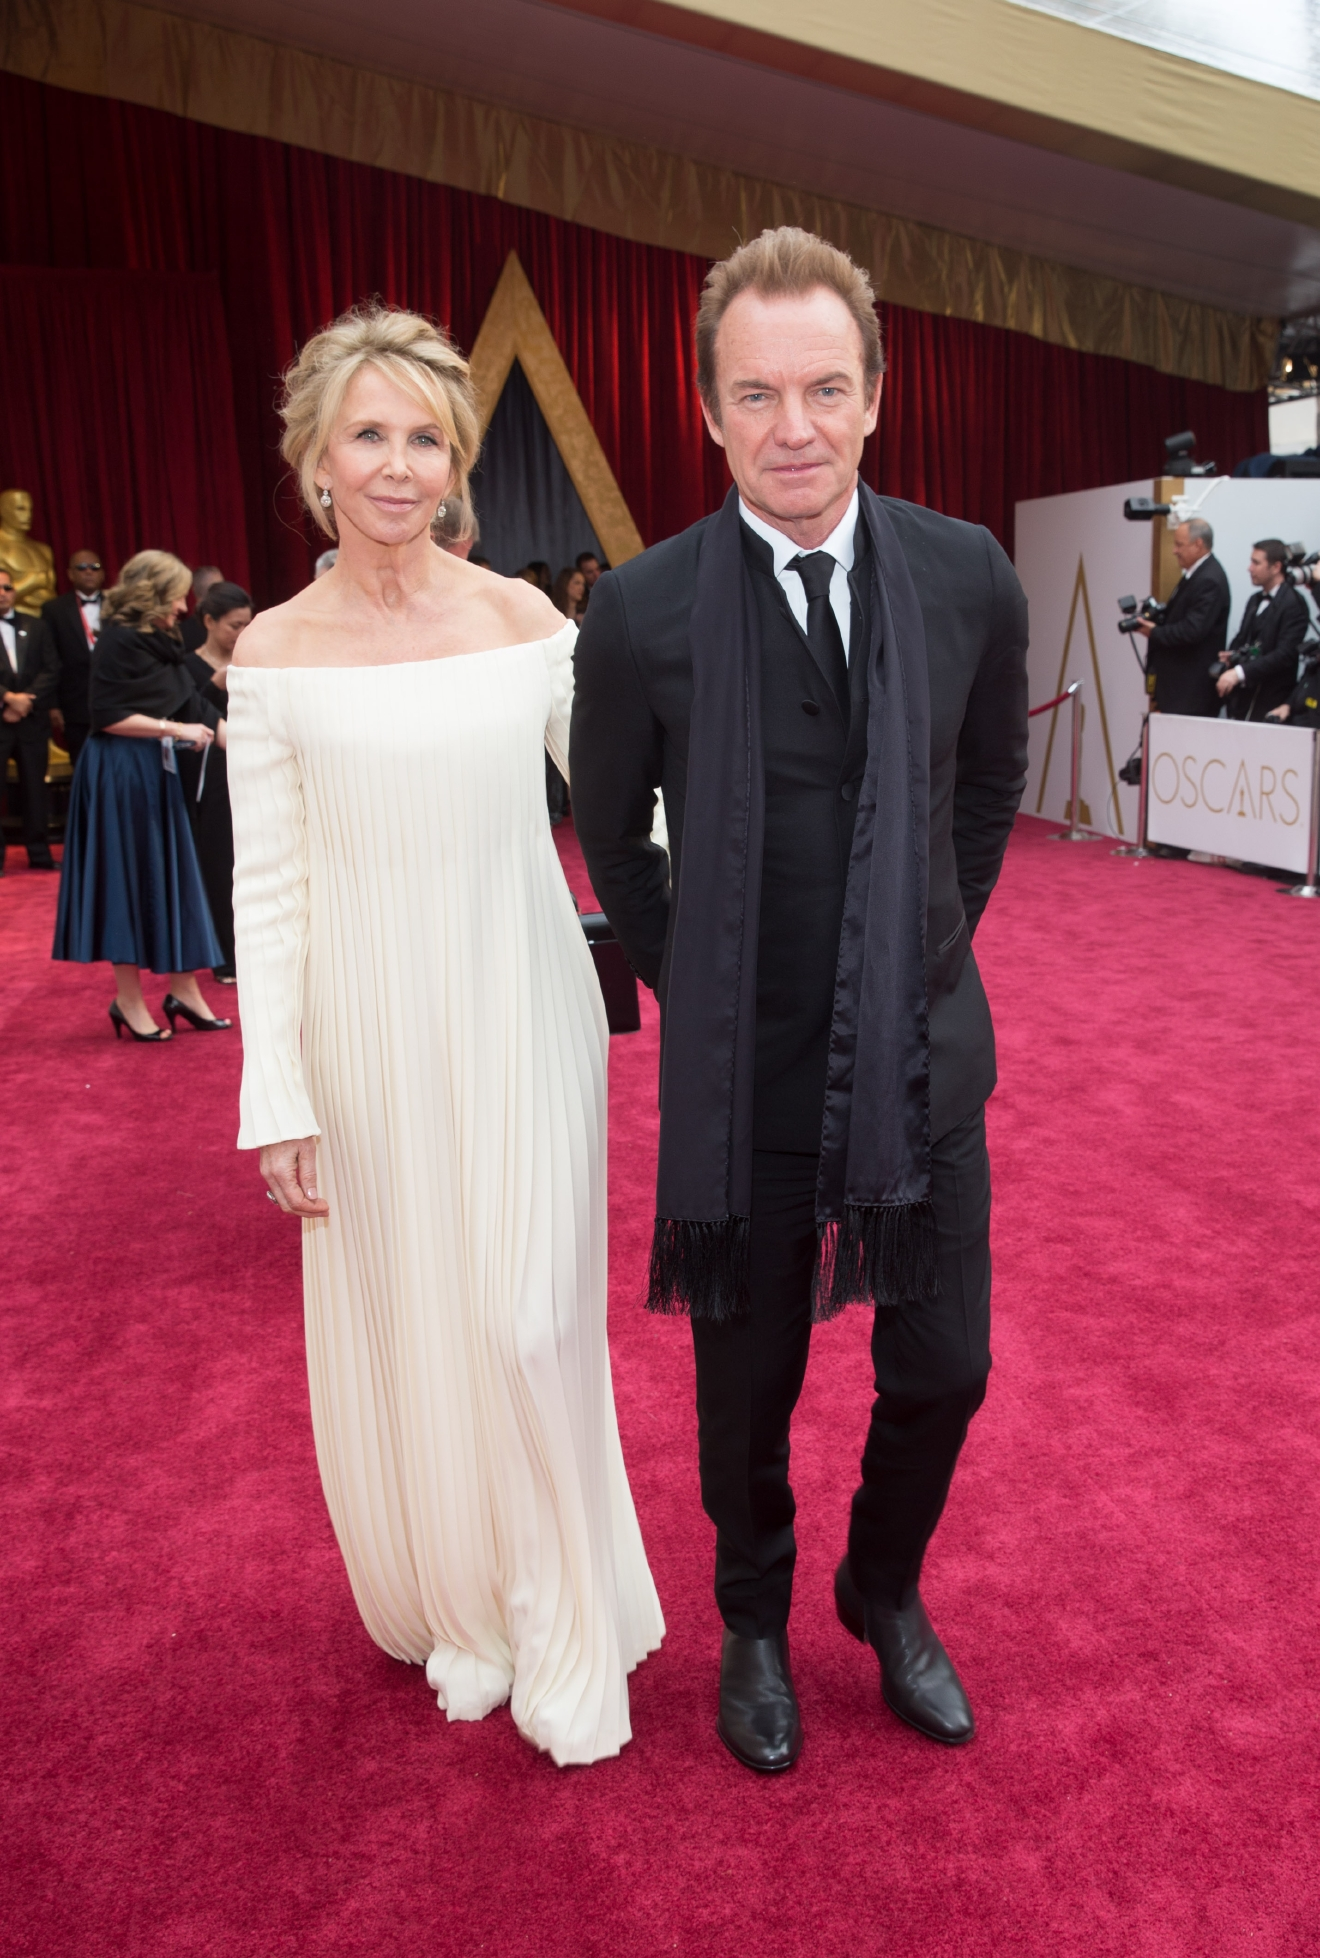 Oscars® nominee Sting and wife, Trudie Styler, arrive on the red carpet at The 89th Oscars® at the Dolby® Theatre in Hollywood, CA on Sunday, February 26, 2017. (©A.M.P.A.S.)